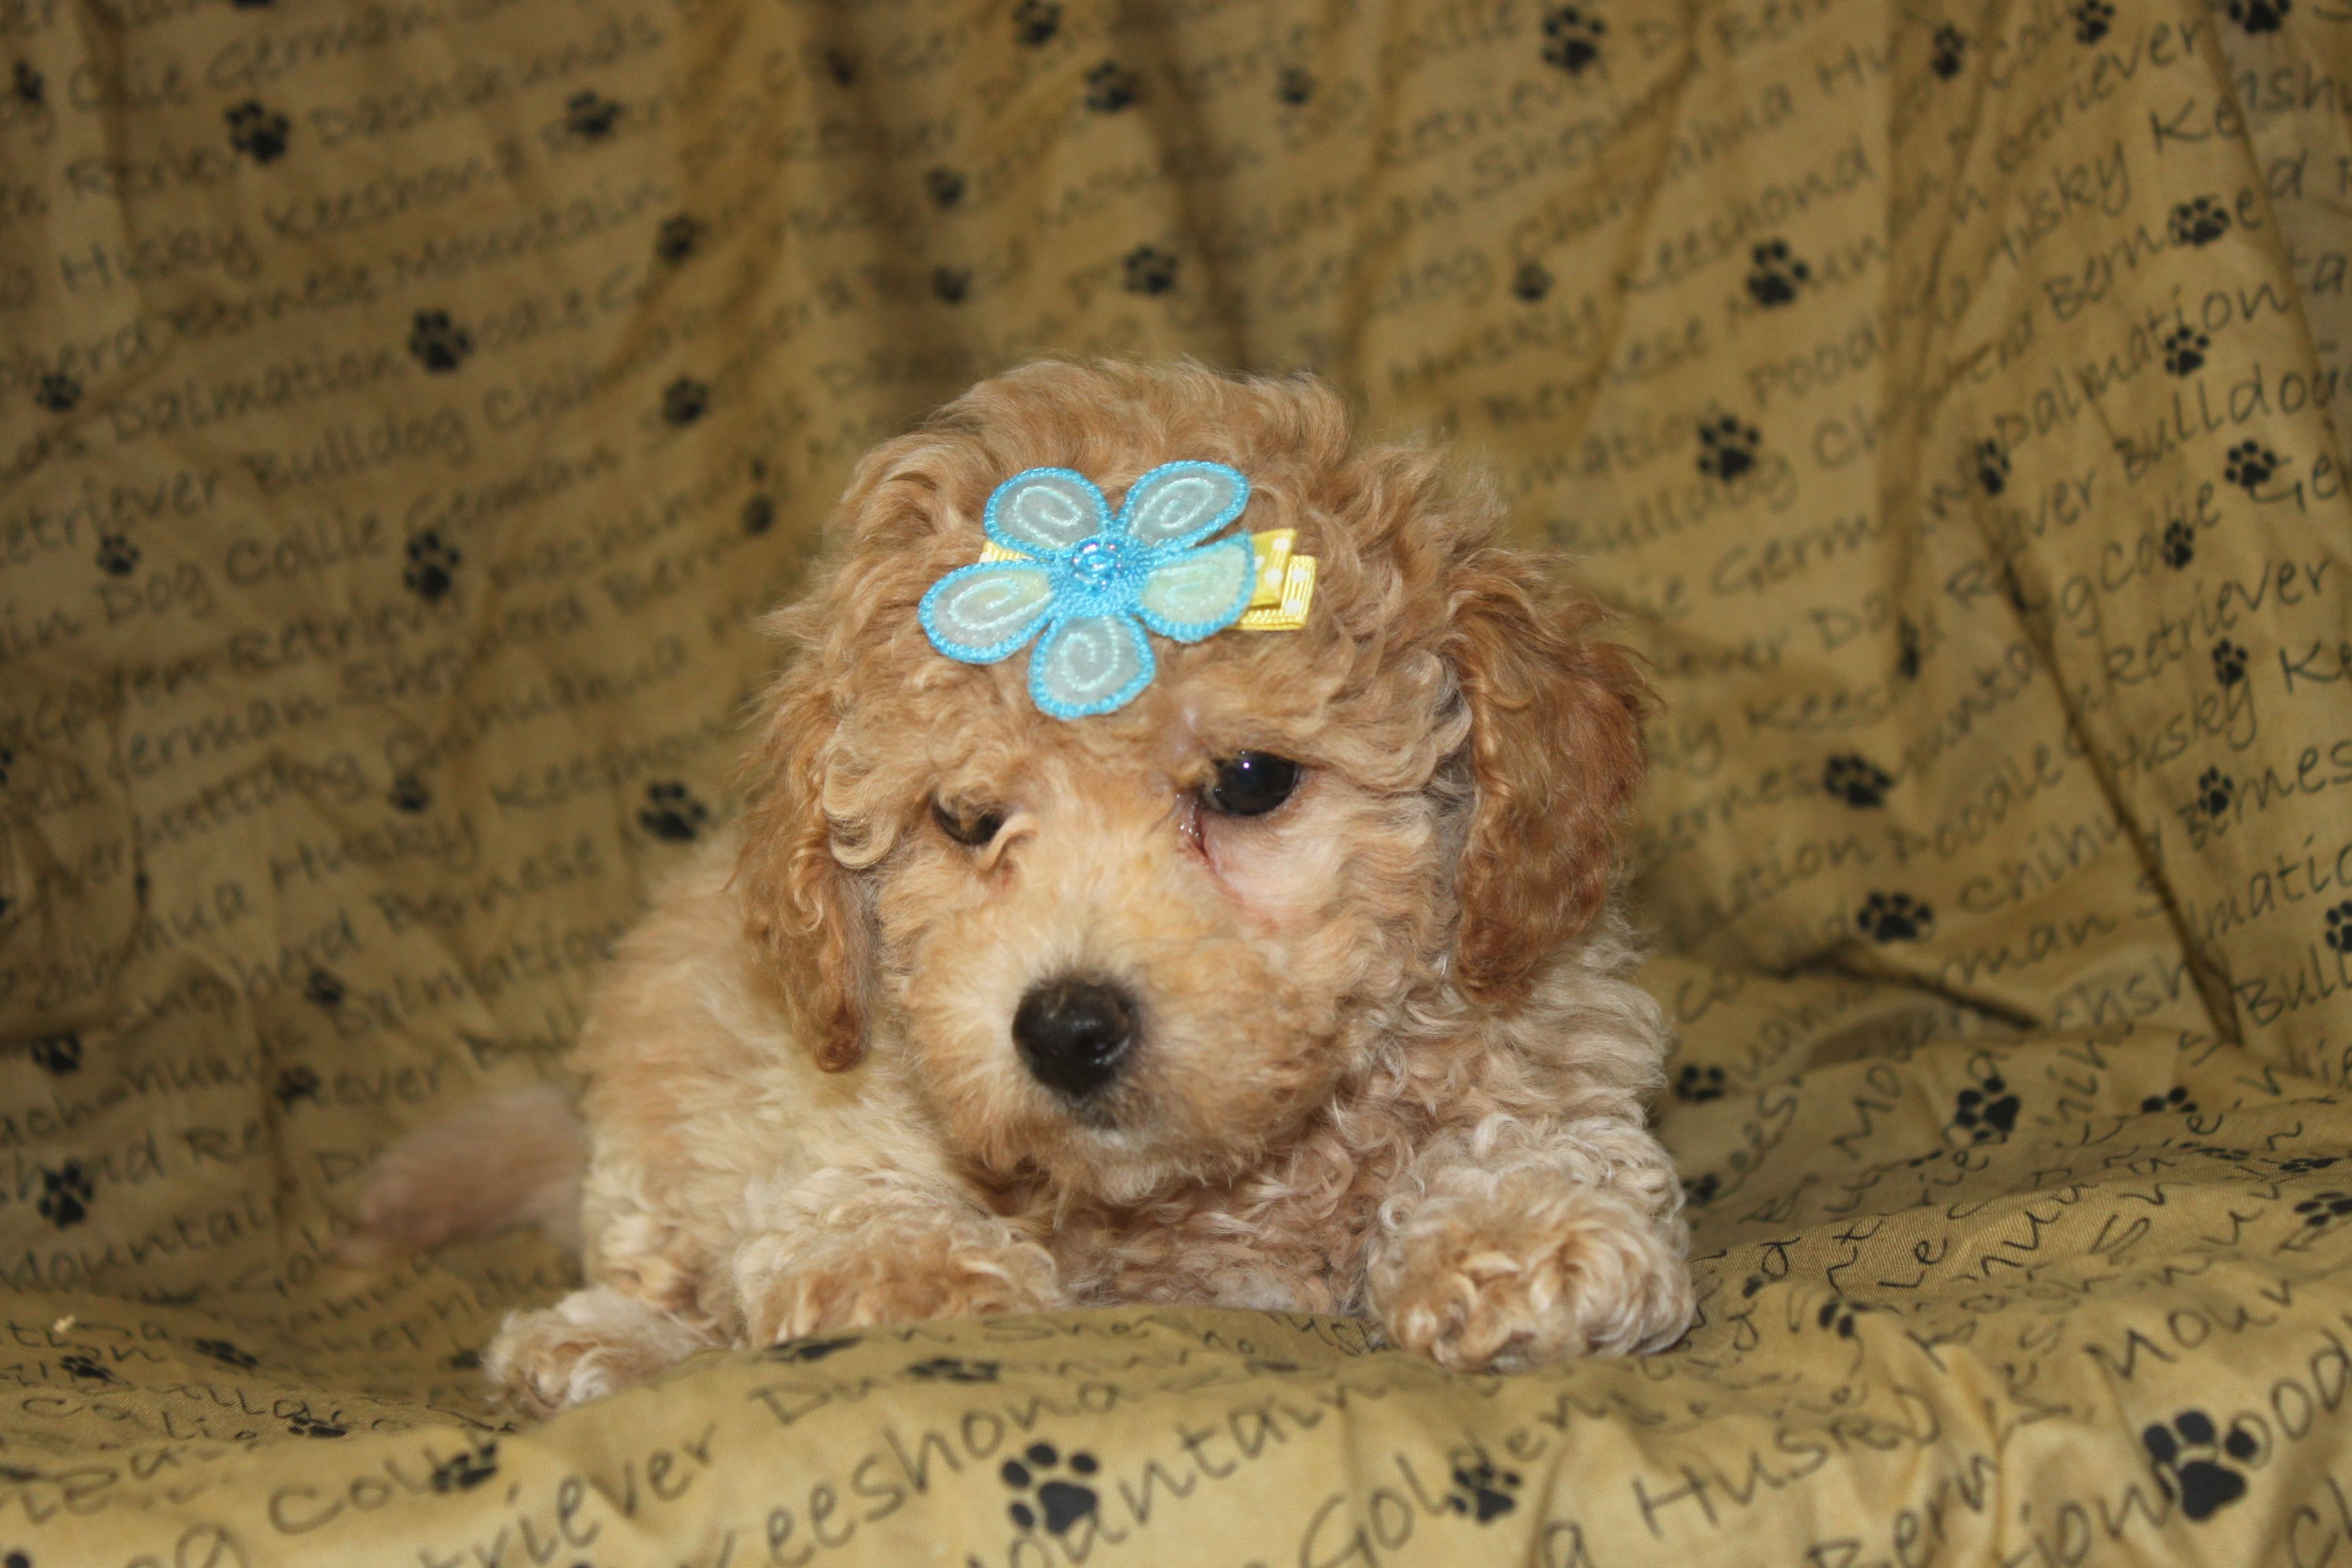 Poo Puppies For Sale In Shippensburg Pennsylvania Www Network34